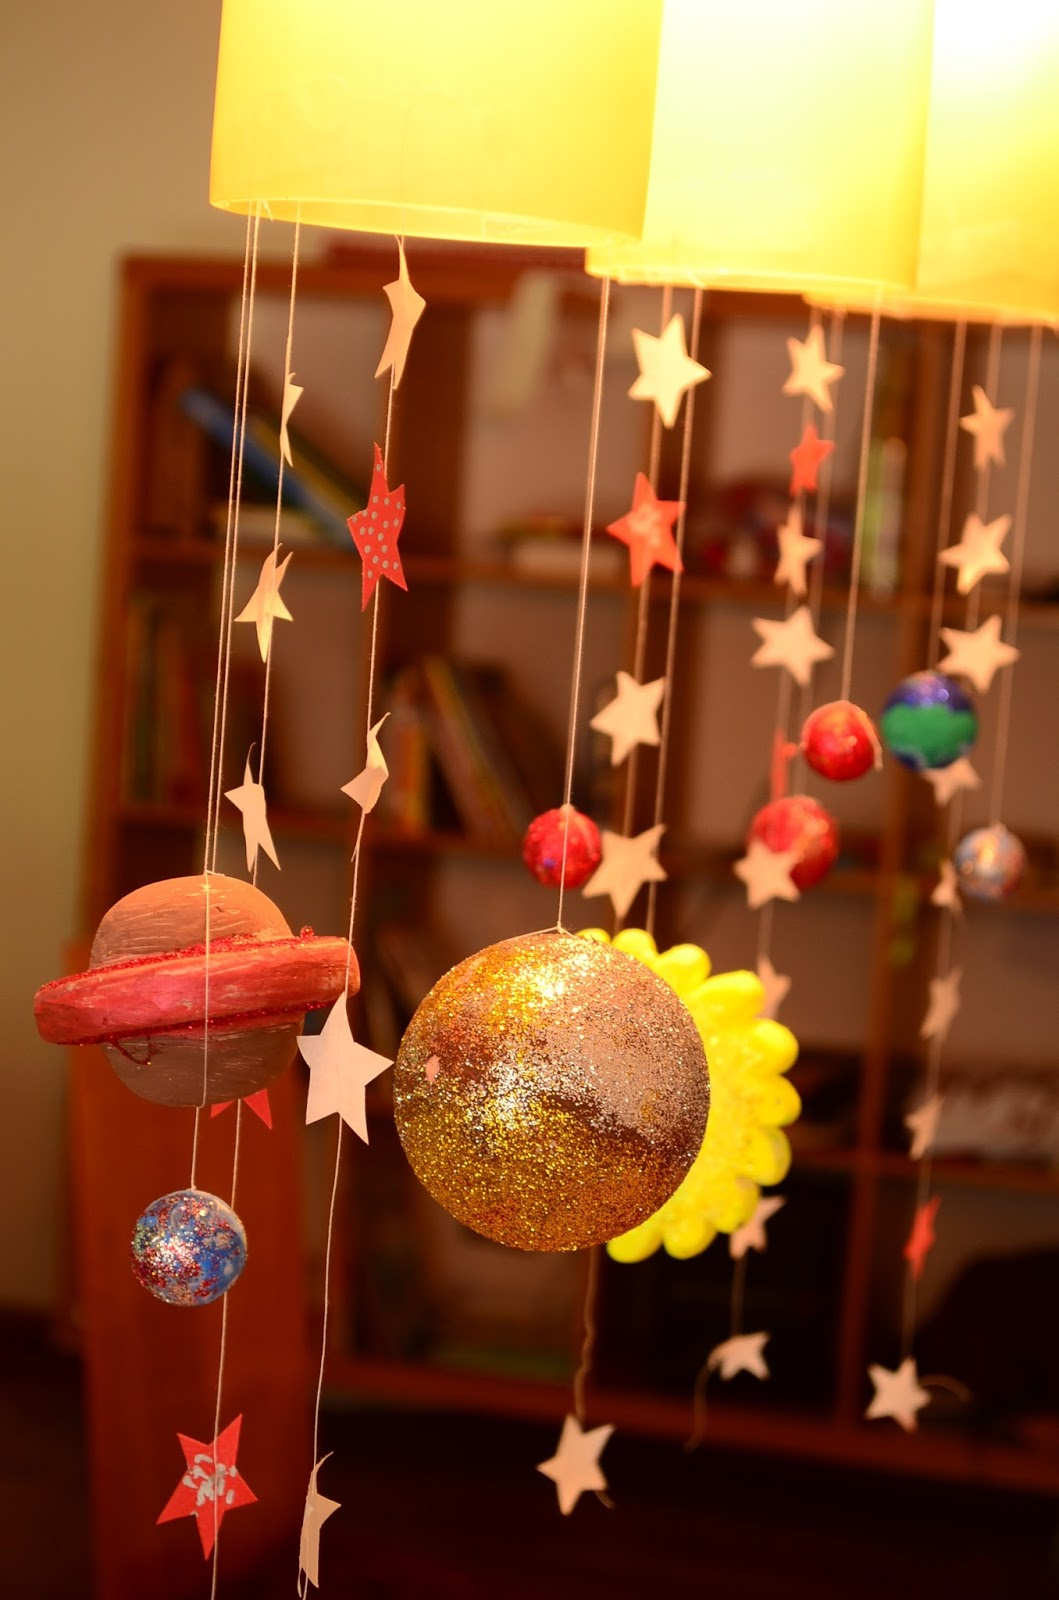 The Practical Mom: Our DIY Solar System Mobile